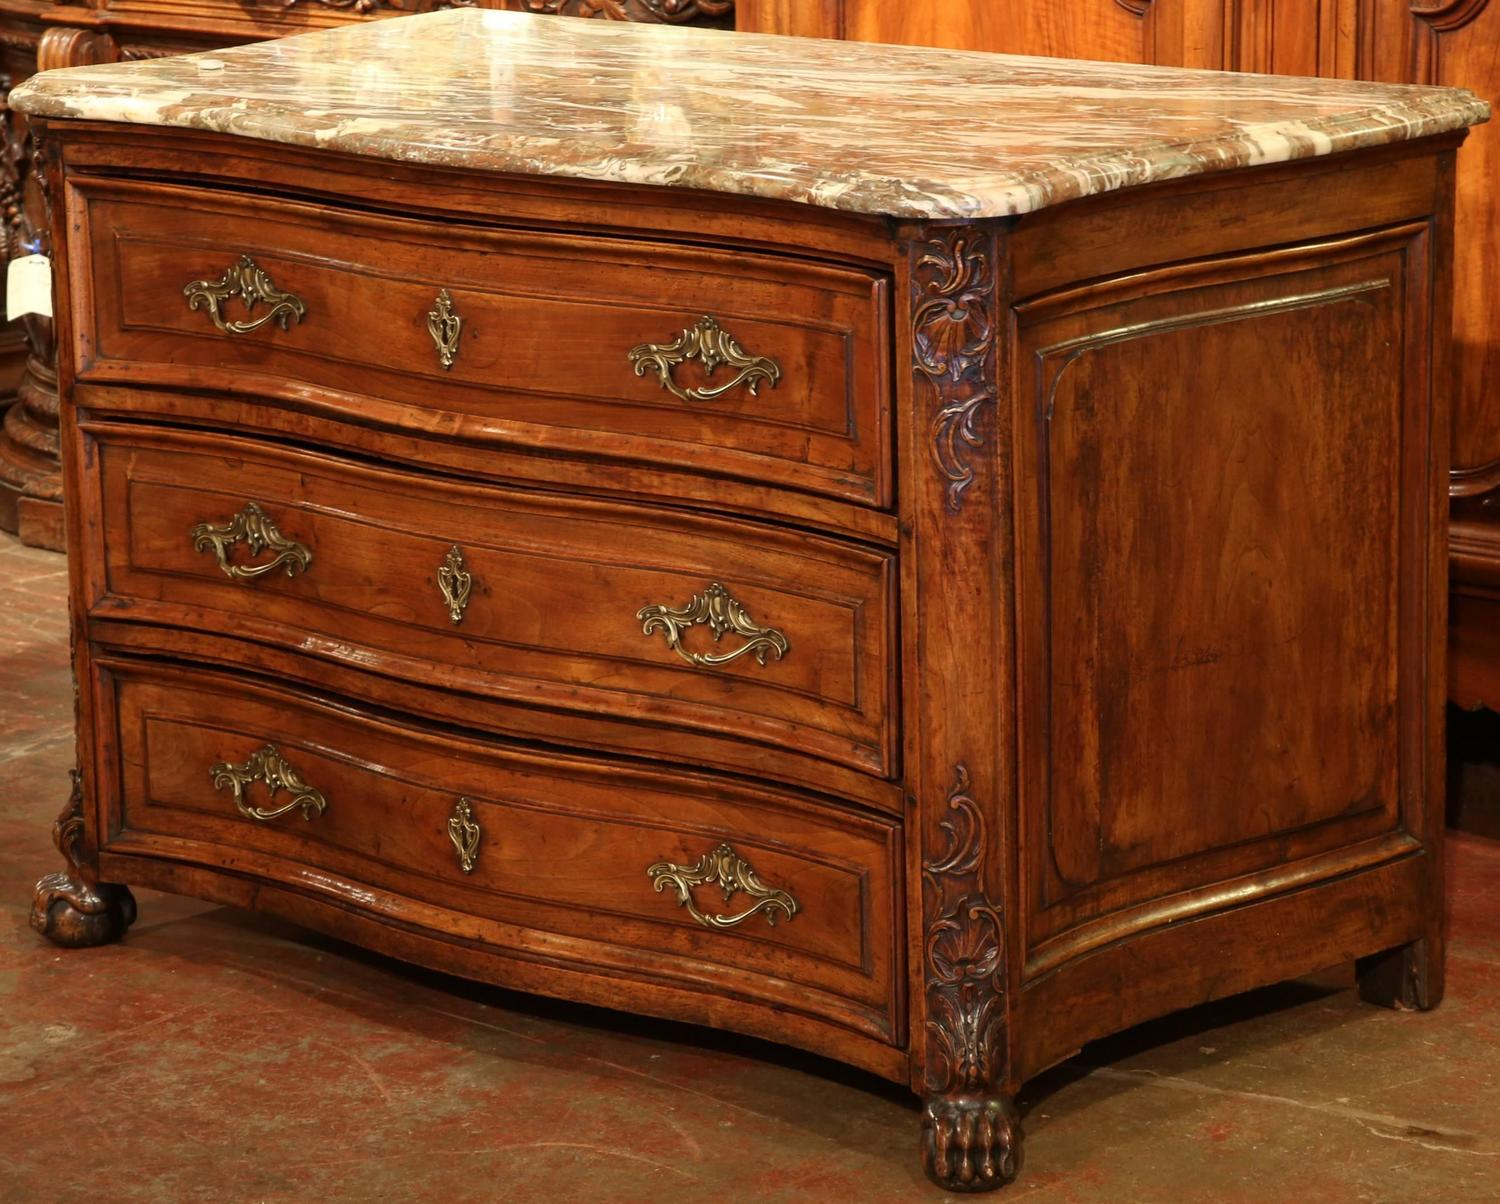 18th century french louis xiv walnut commode from burgundy with marble top for sale at 1stdibs. Black Bedroom Furniture Sets. Home Design Ideas